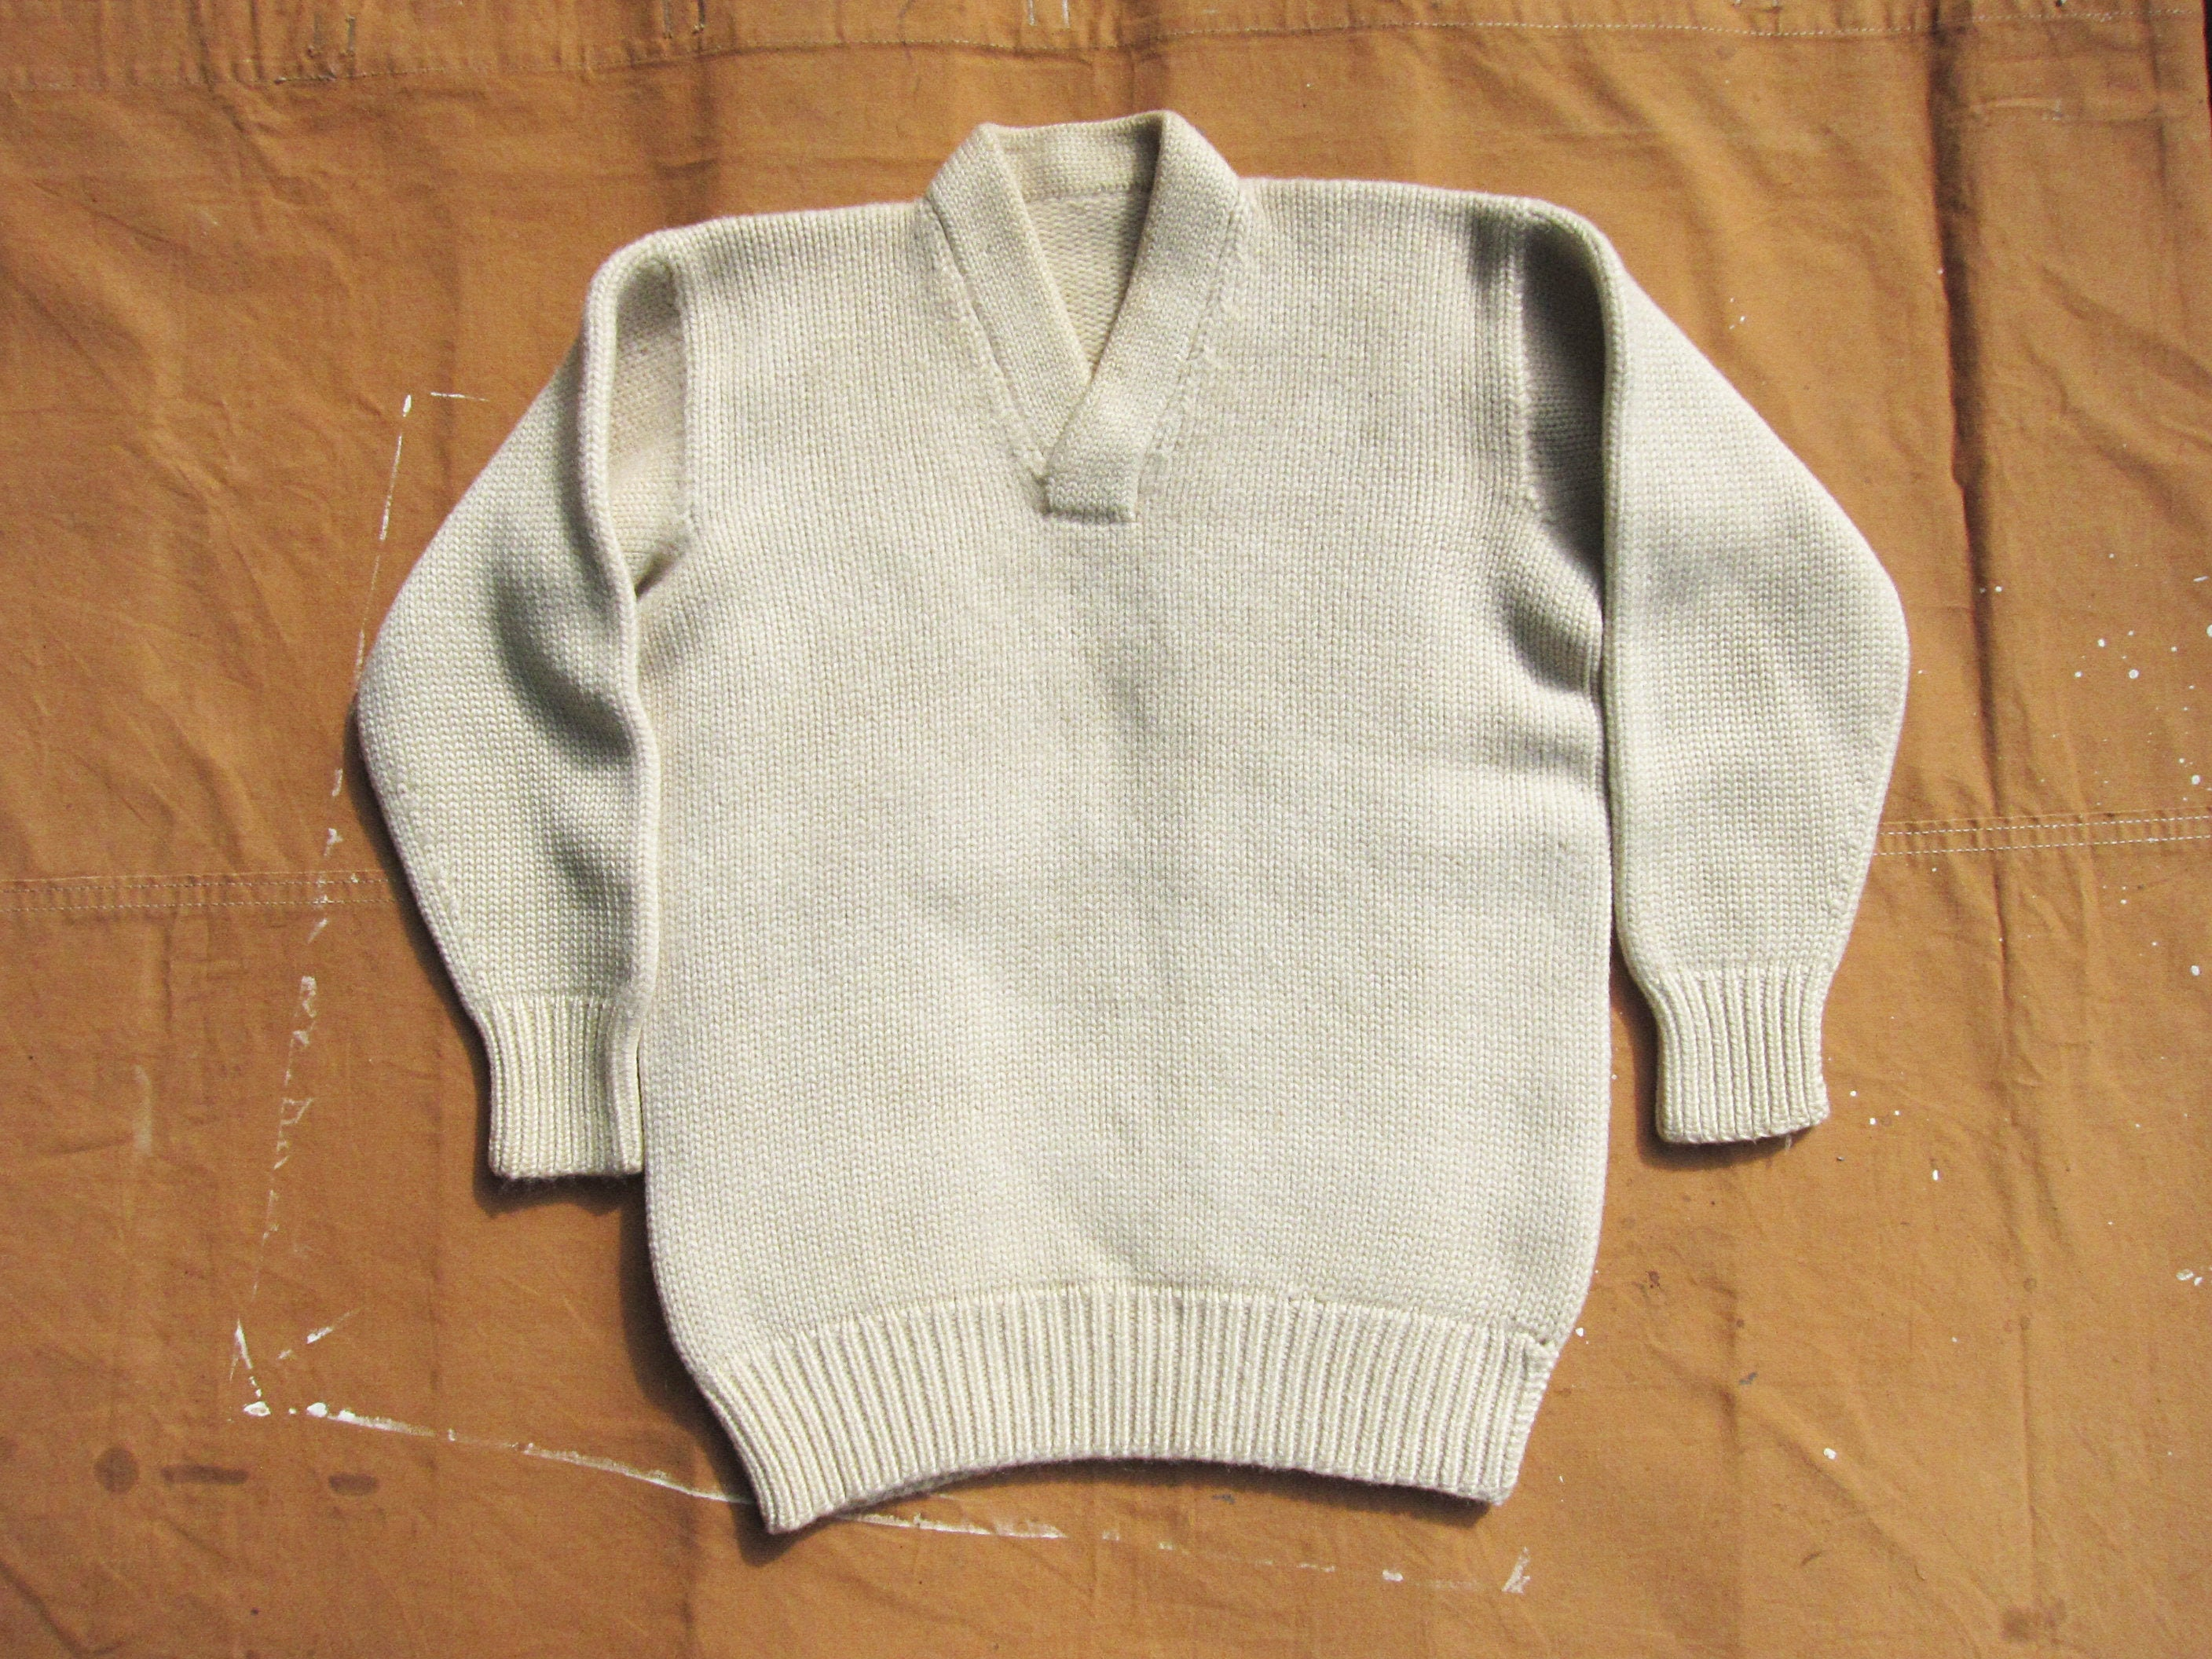 New 1930s Mens Fashion Ties xsSmall 30S Wool Knit Athletic Sweater 1930S, University, Letterman, Varsity, College, Athletic, Pullover Super Thick James Brine $0.00 AT vintagedancer.com